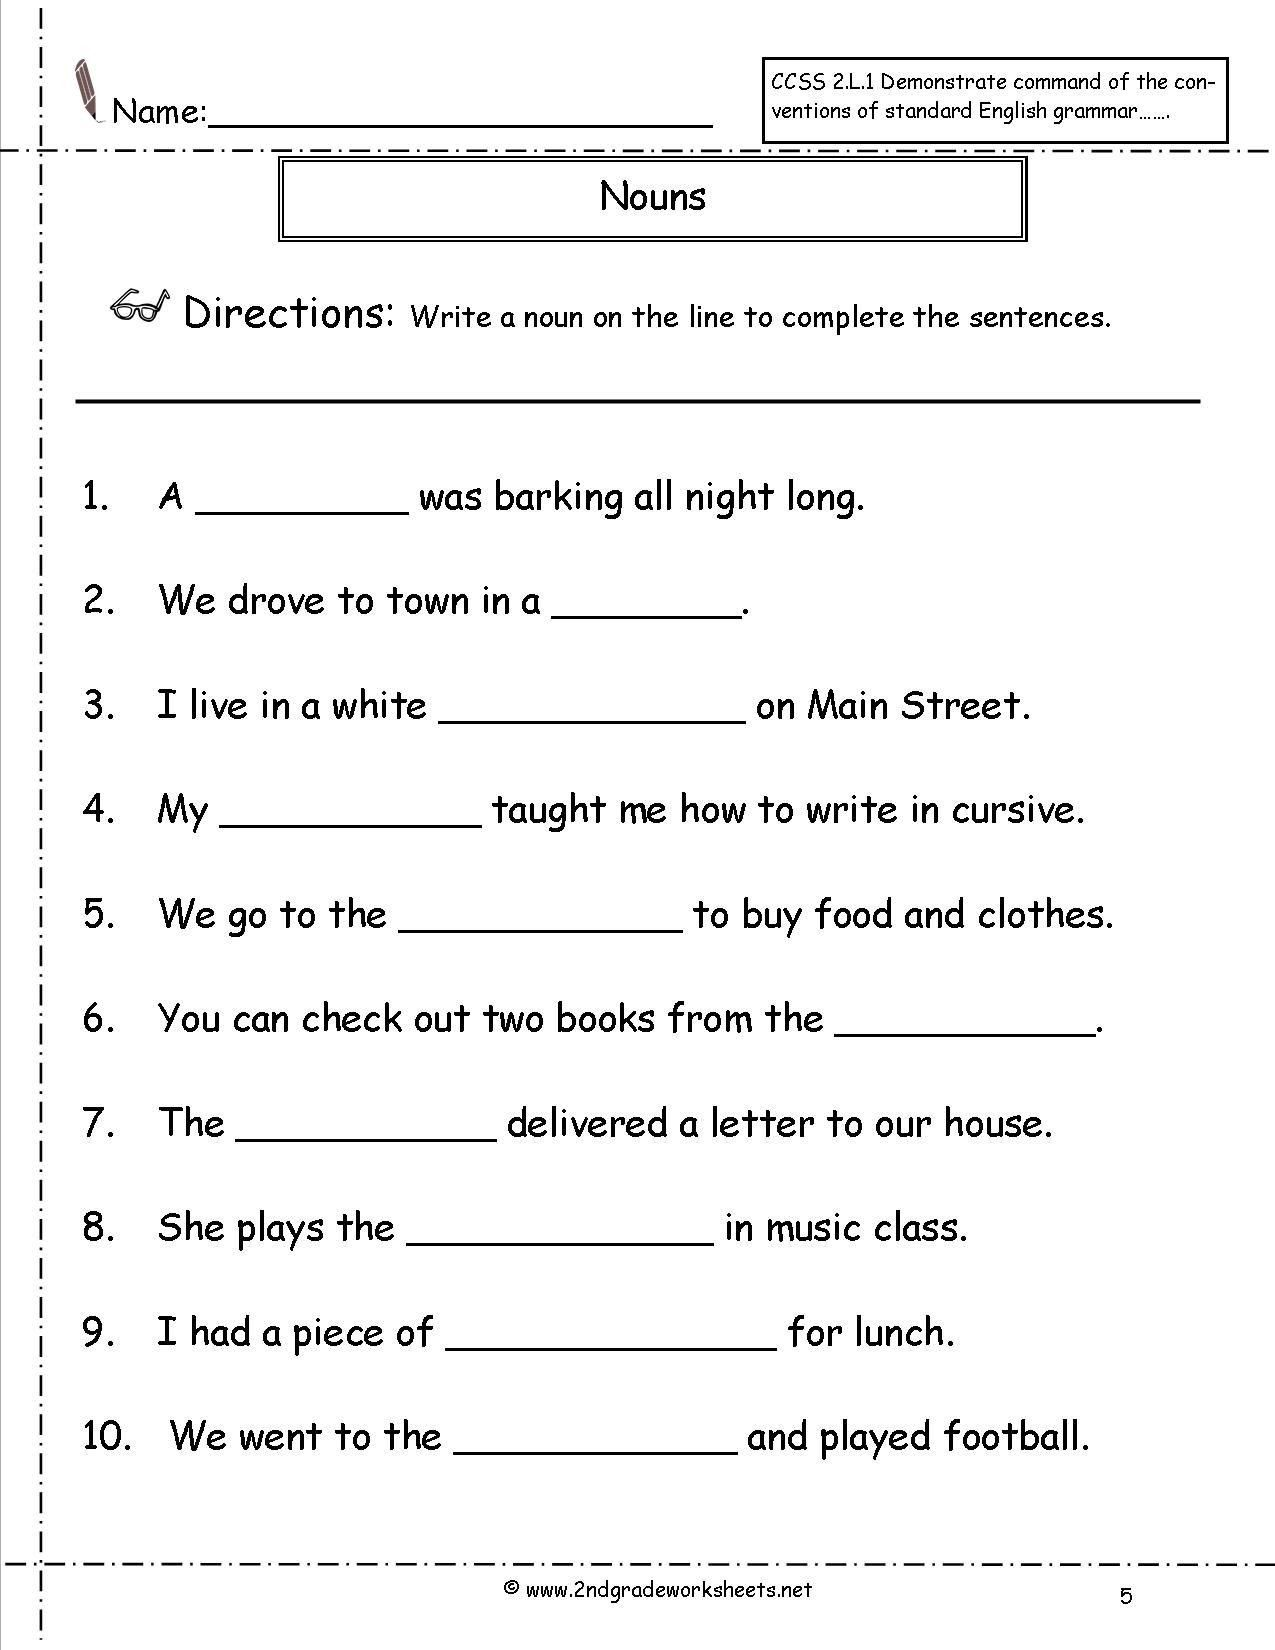 small resolution of 3rd Grade Grammar Worksheets Free Math Worksheet 2nd Grade Grammar  Worksheets Math Workshe…   Nouns worksheet